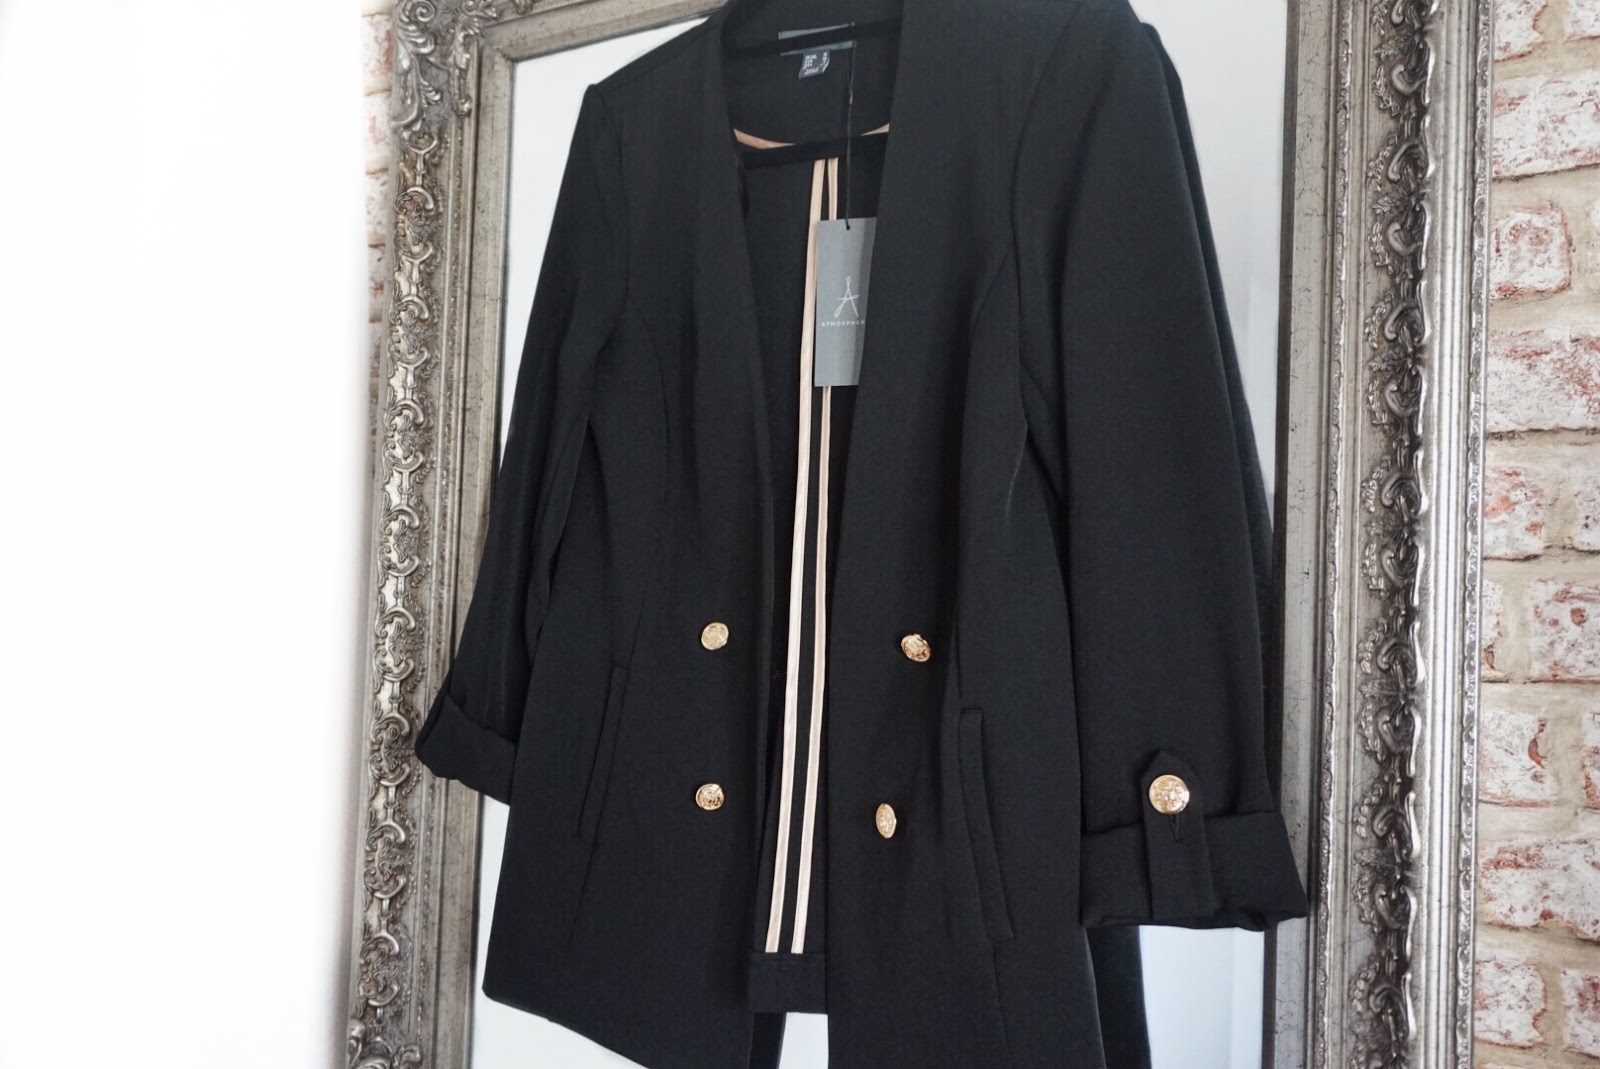 Primark blazer full length